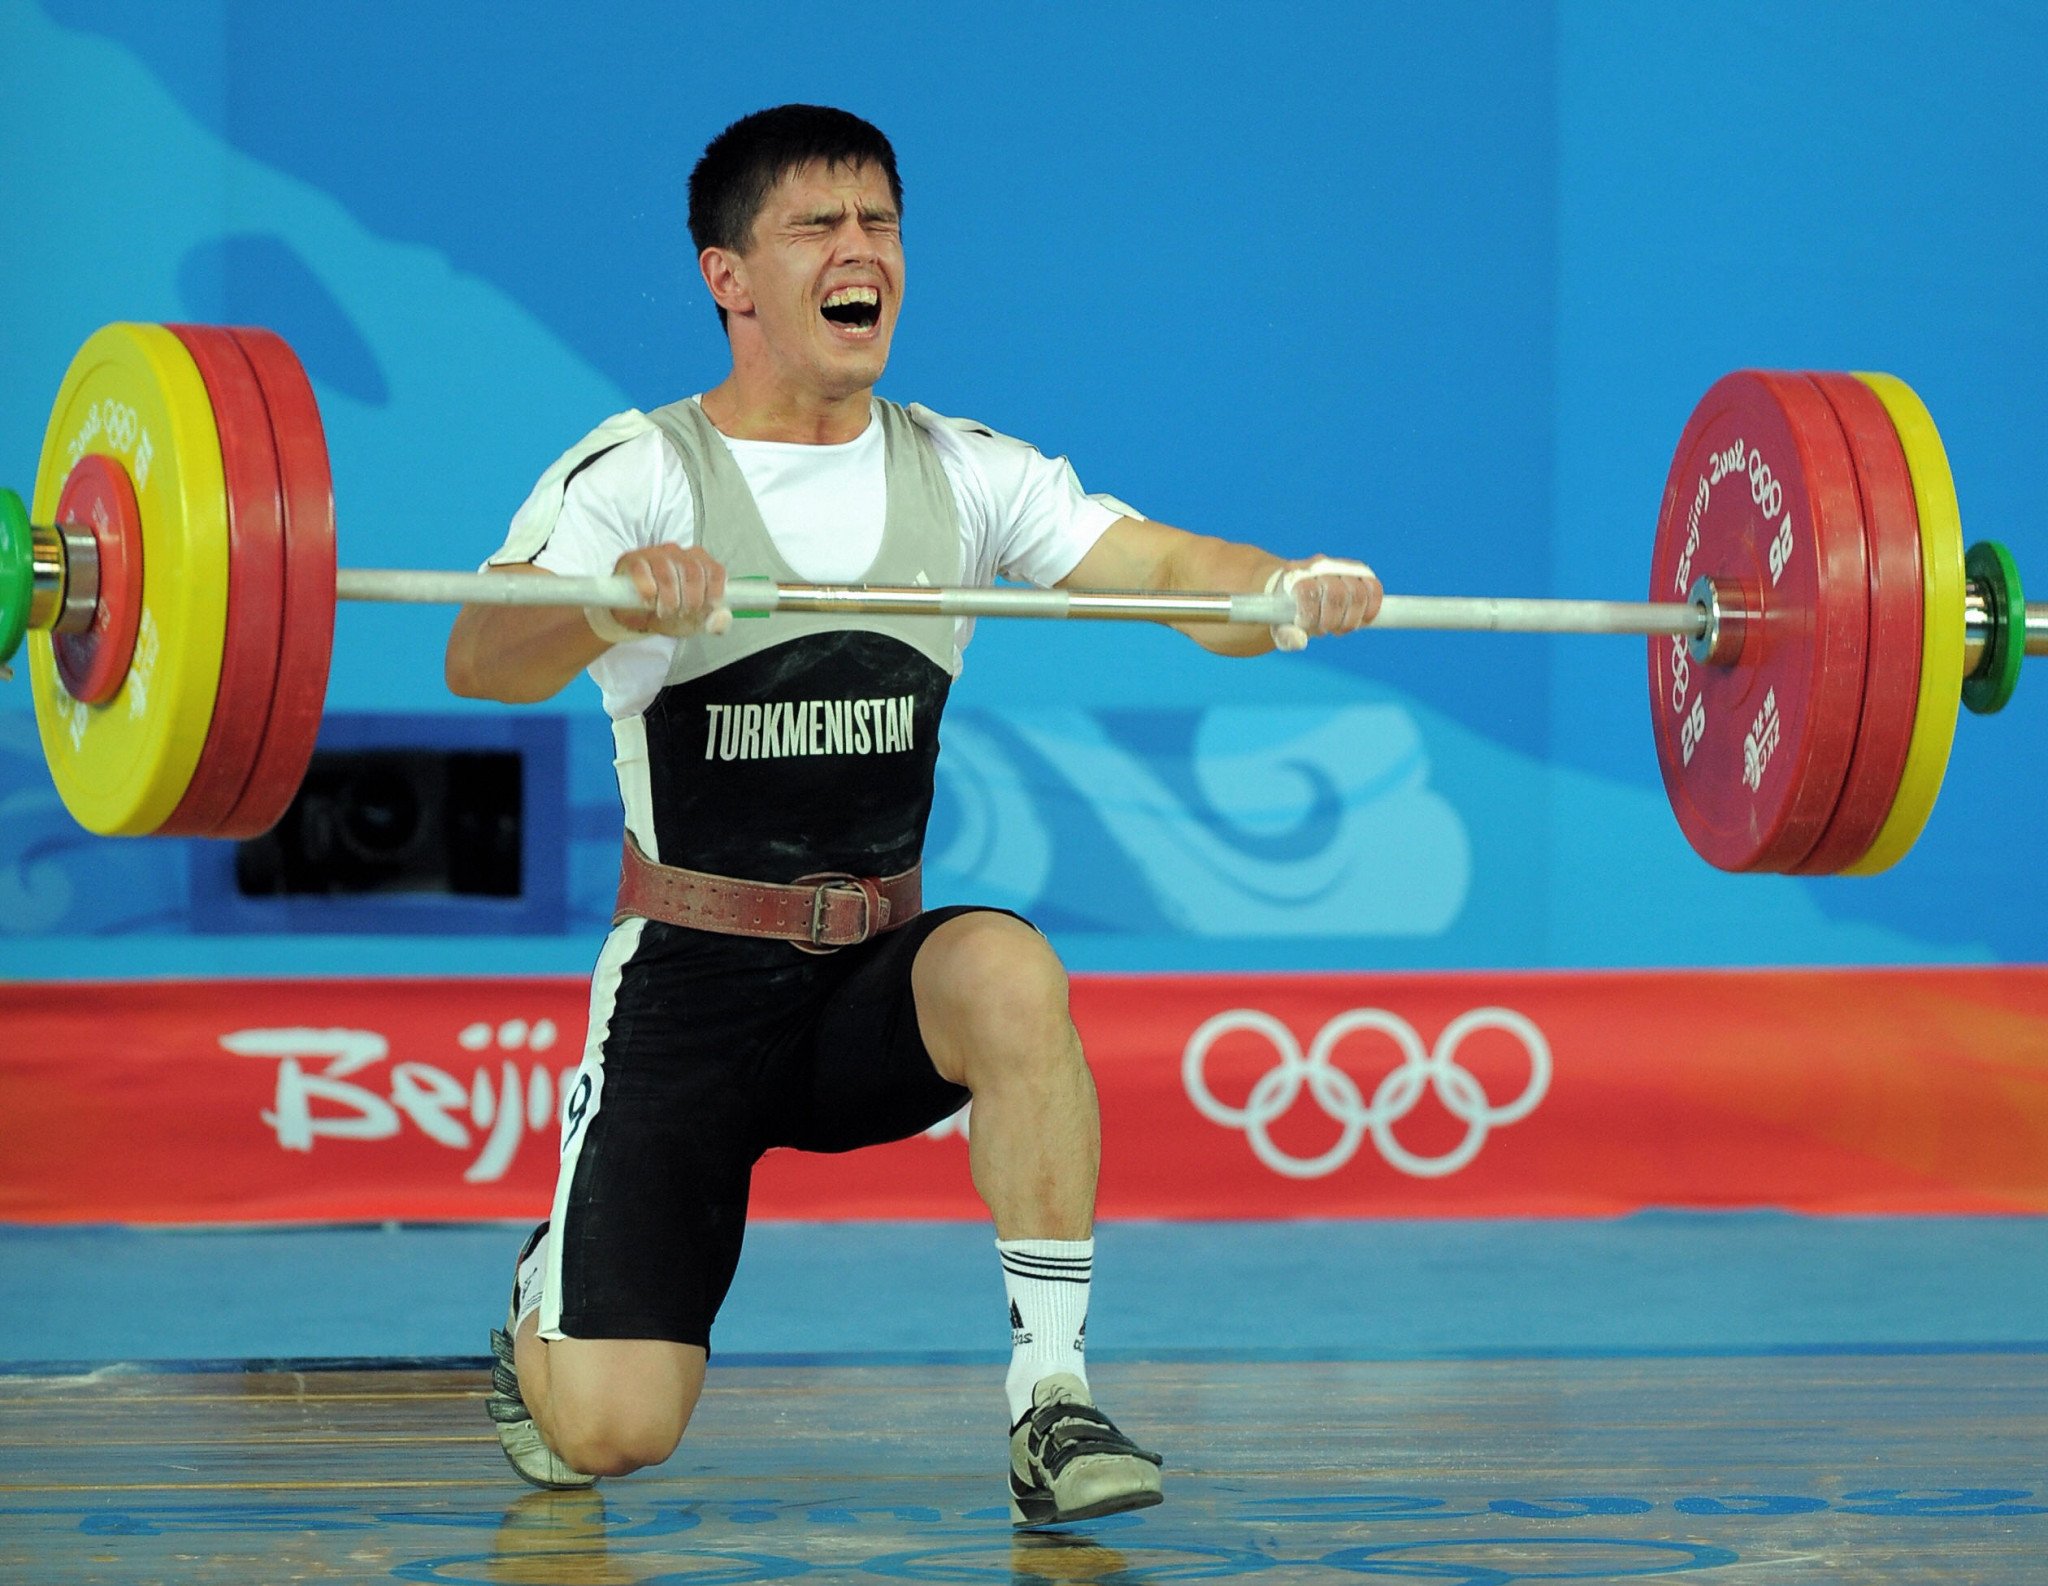 Umurbek Bazarbayev lifted at four Olympic Games  ©Getty Images